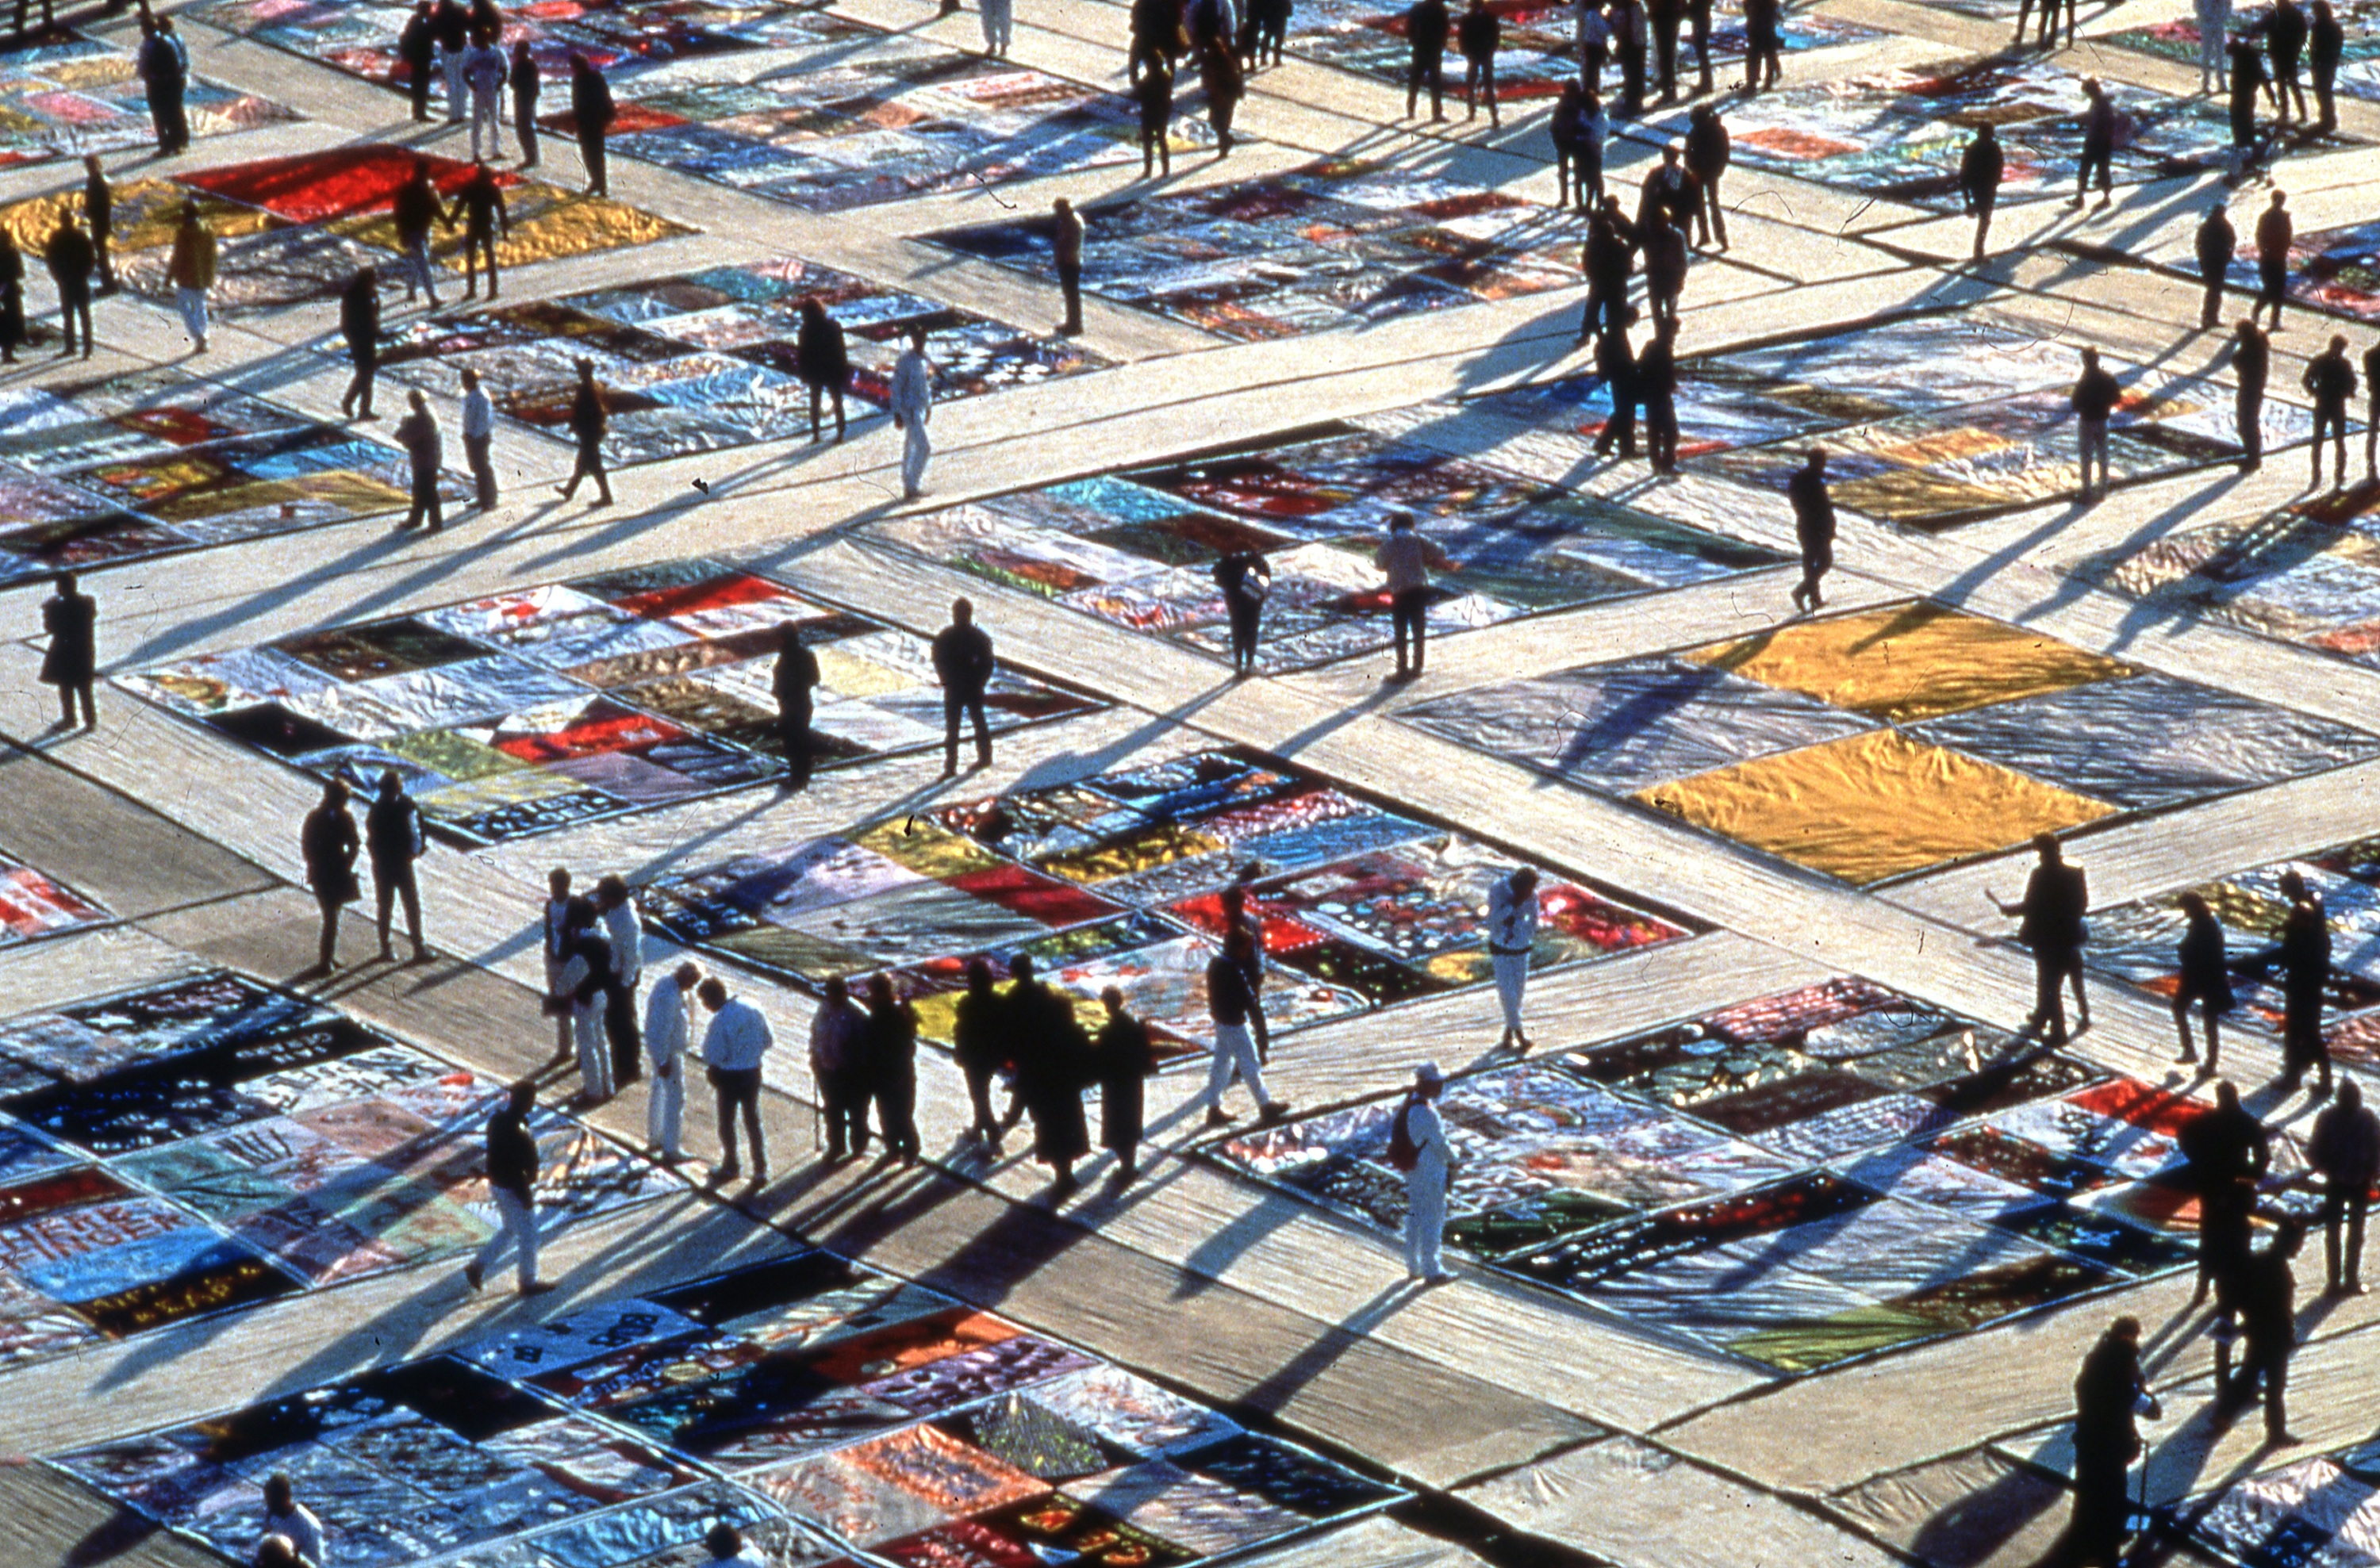 Kiehl's brings the AIDS Memorial Quilt to Governor's Island today